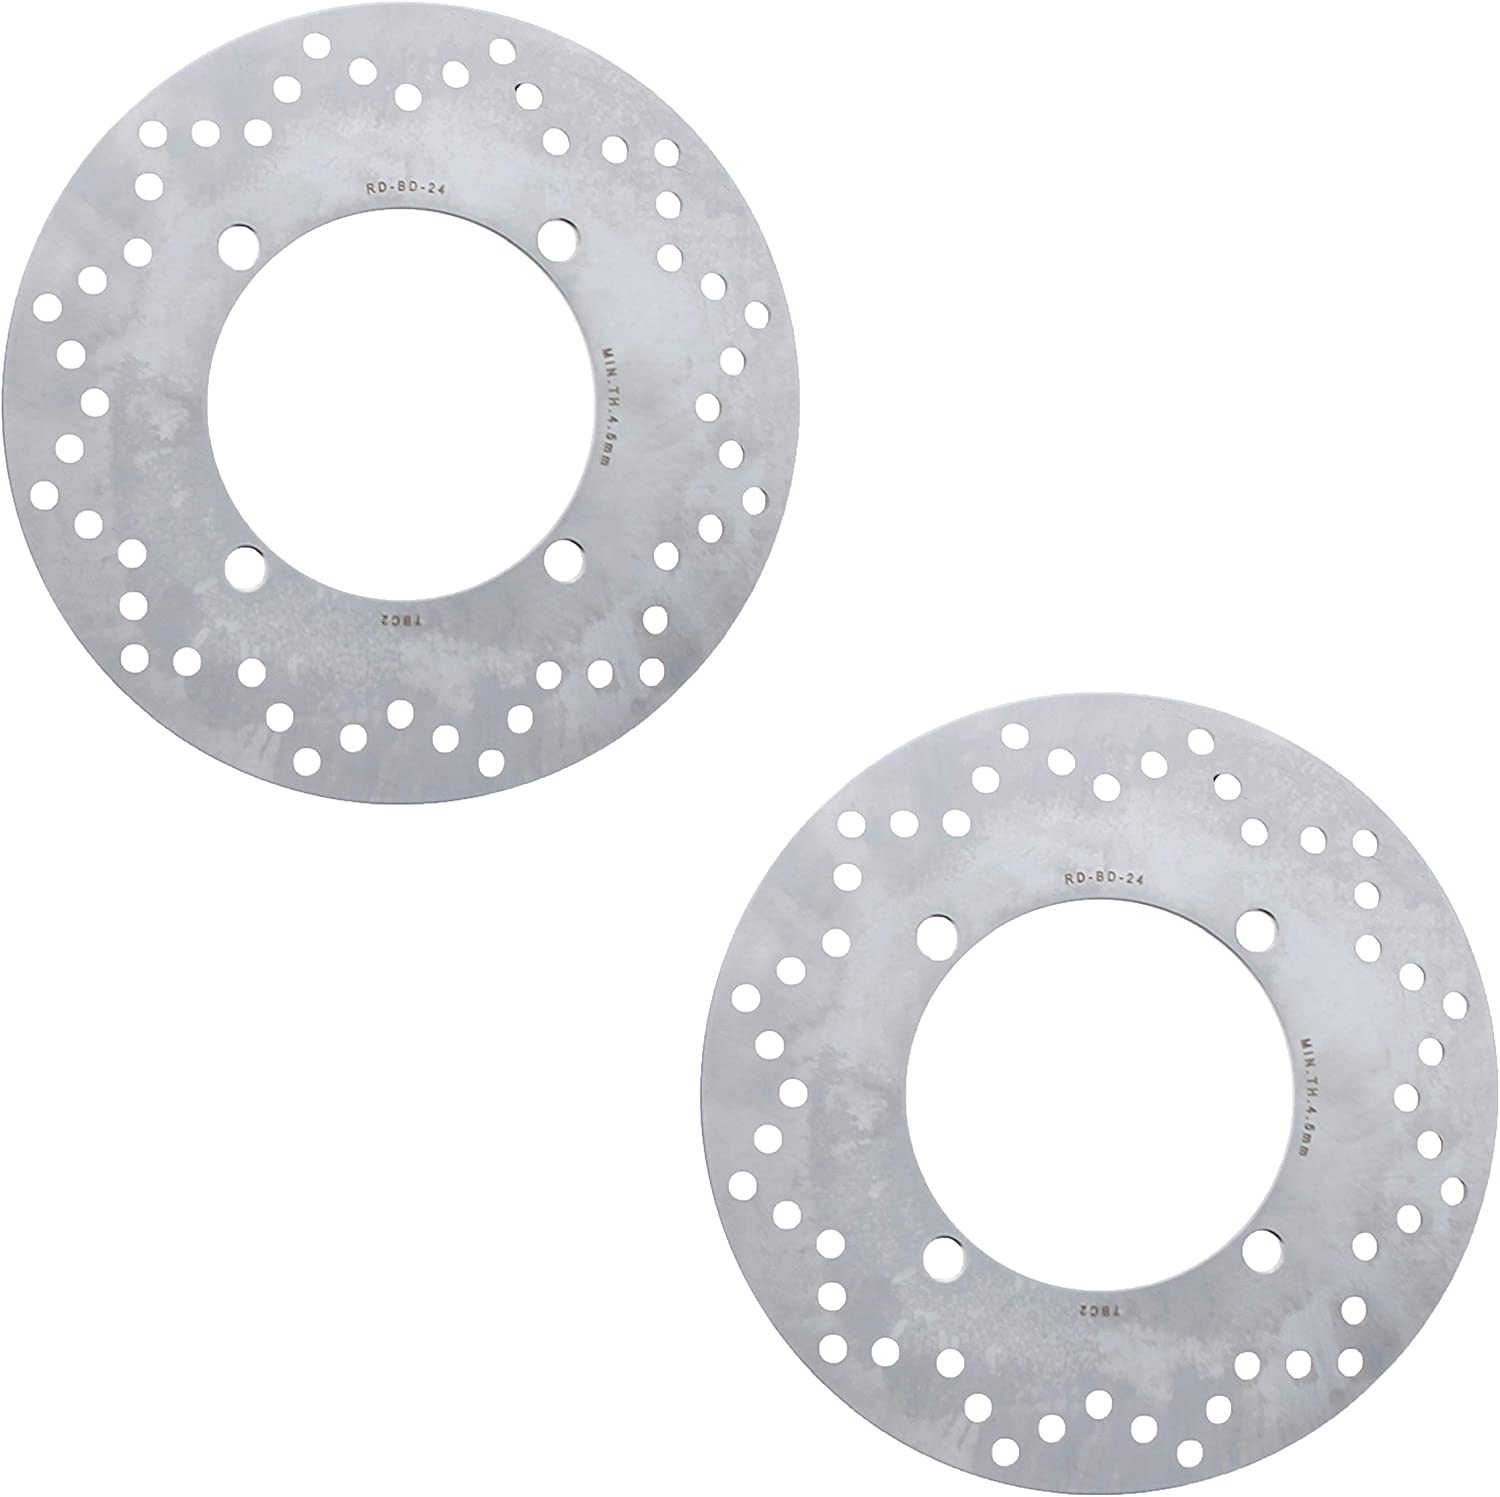 2015 Polaris Ranger Crew 900 Front Brake Rotors Discs